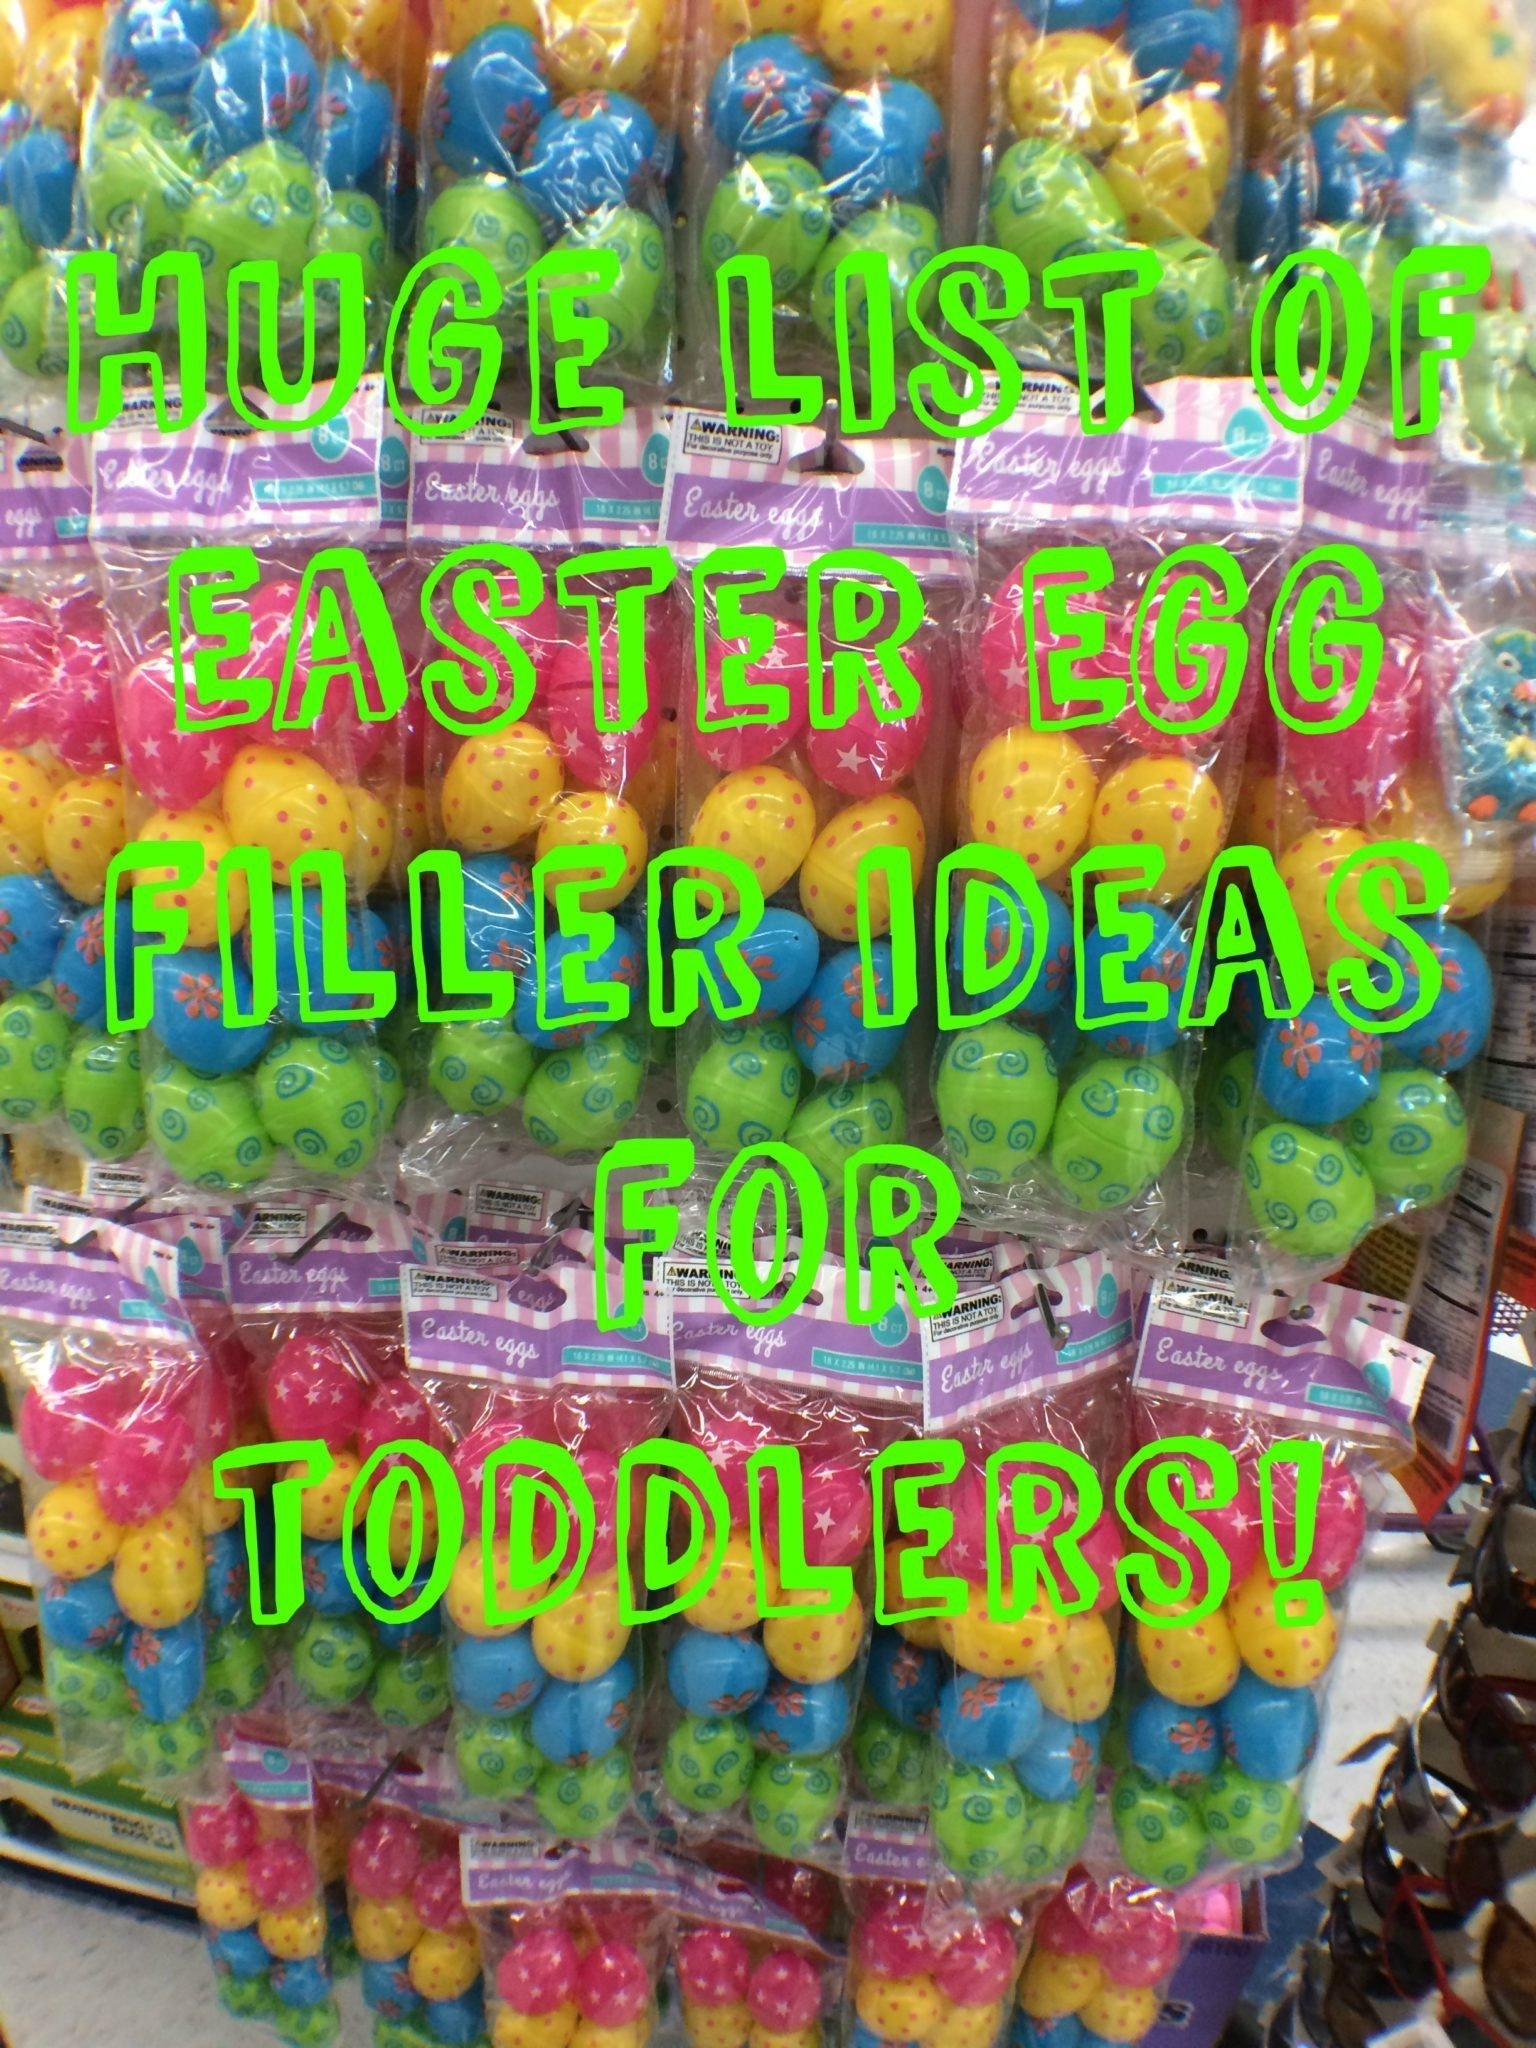 10 Elegant Easter Egg Ideas For Toddlers huge list of easter egg filler ideas for toddlers beansters bytes